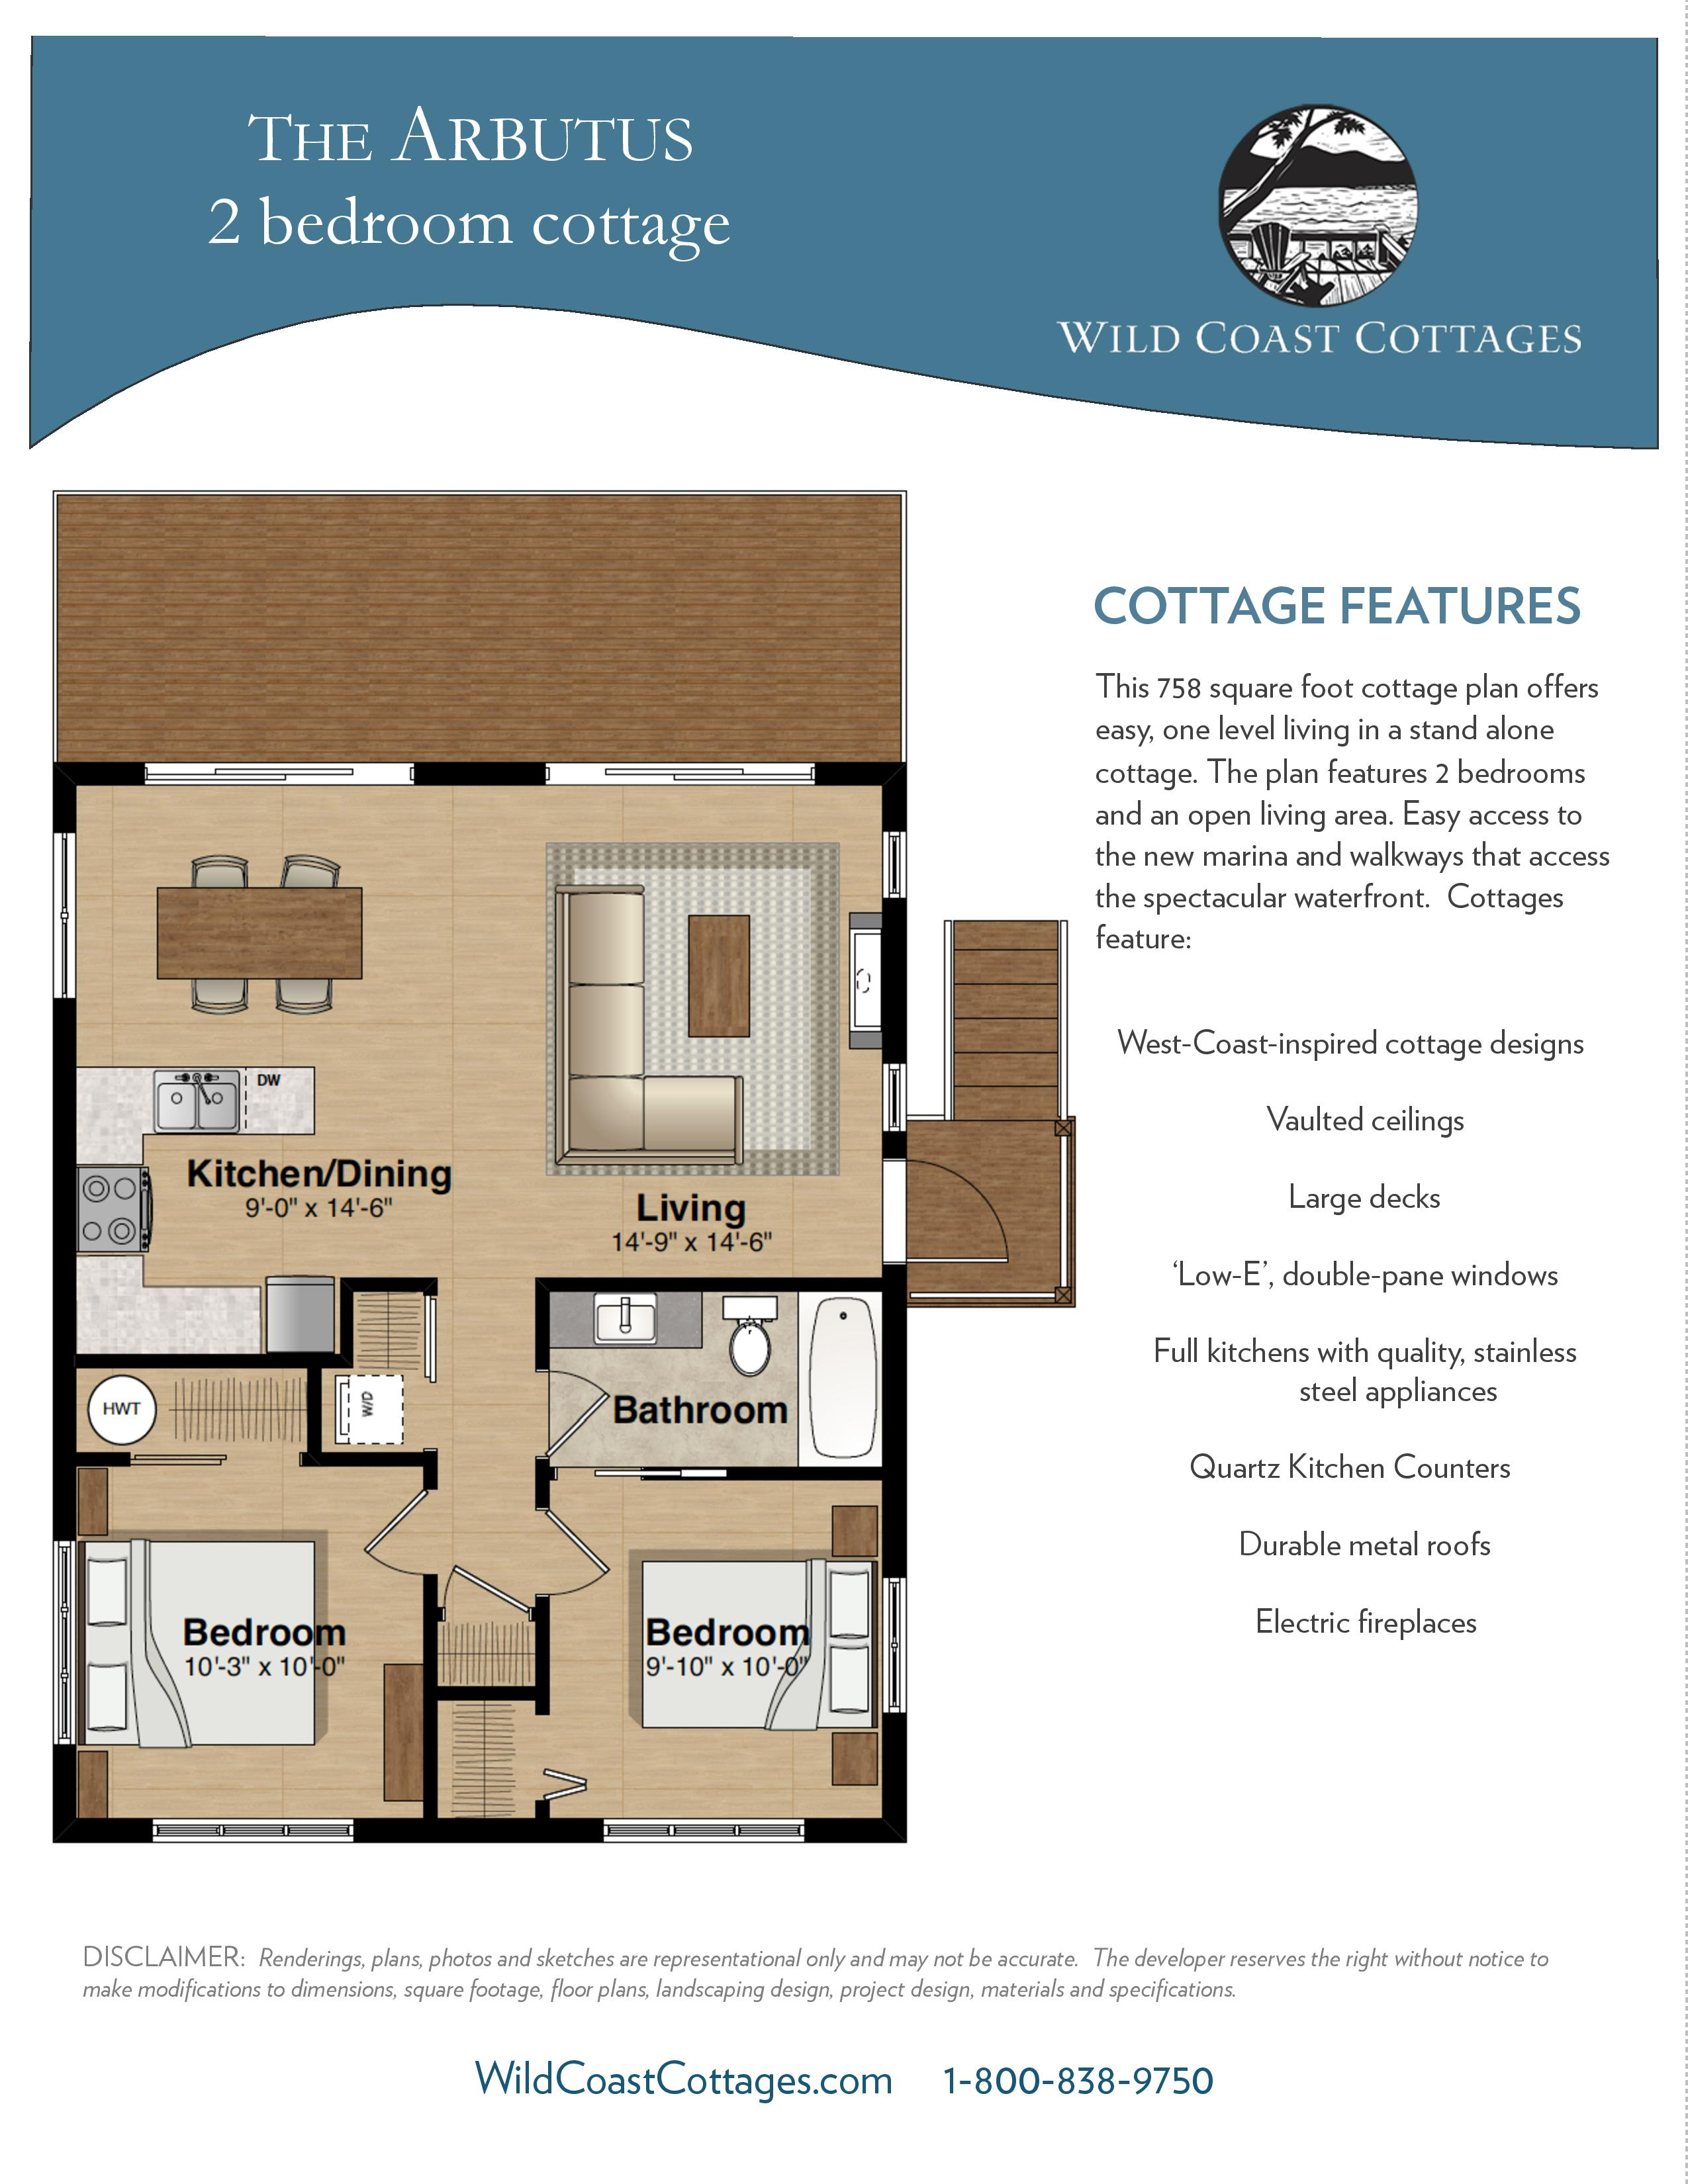 Arbutus floorplan